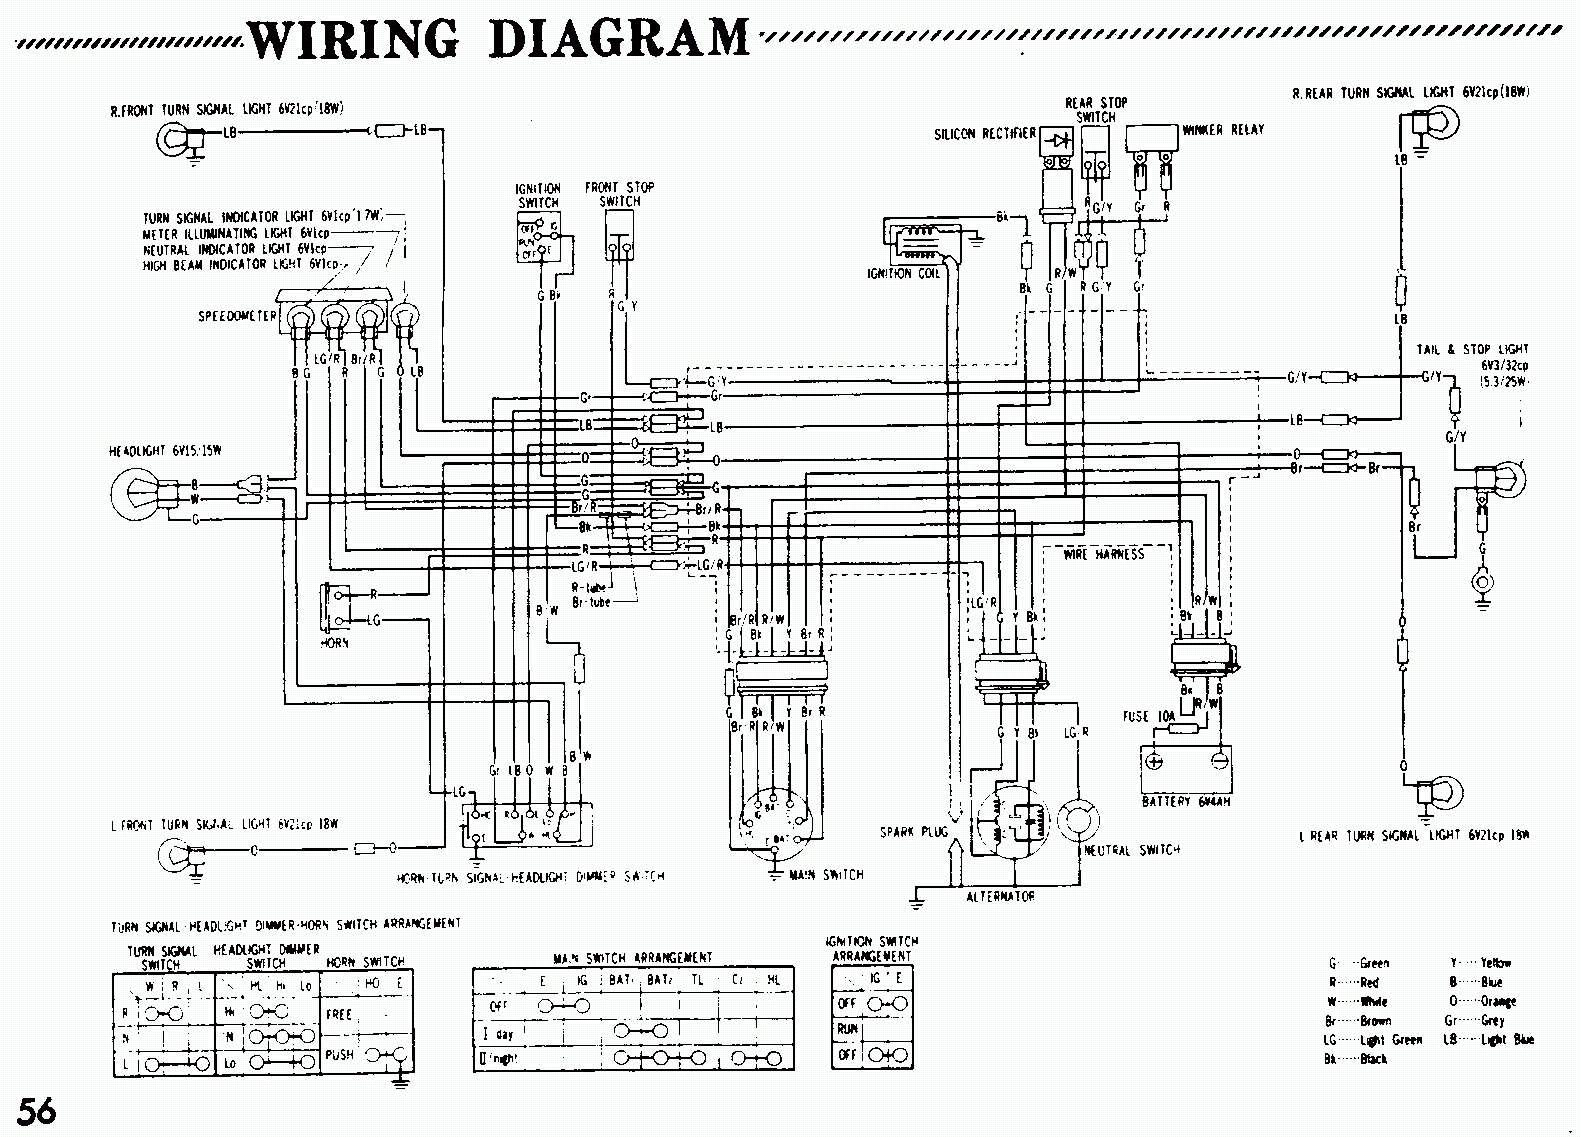 133 additionally John Deere X140 Garden Tractor Spare Parts likewise 399476 Headlight Switch Wiring Diagram 2002 F150 together with Electrical Ladder Diagrams For Dummies additionally Wiring Diagram Html Pic2fly 1995 Chevy S10. on harley wiring diagrams online